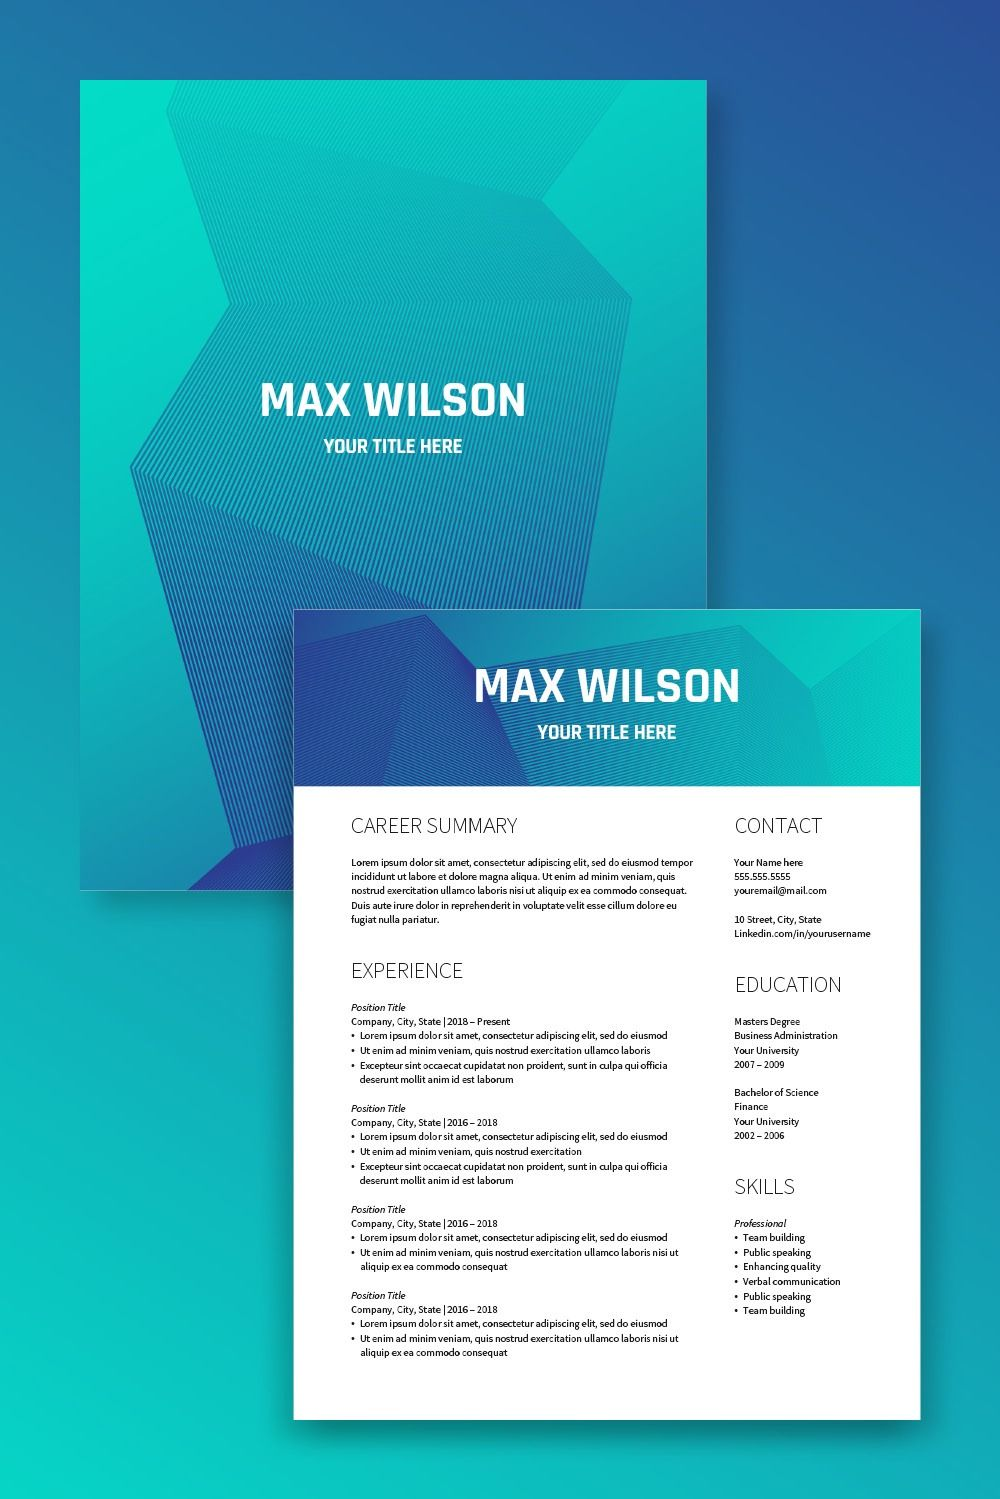 Futuristic and modern resume template for word and open